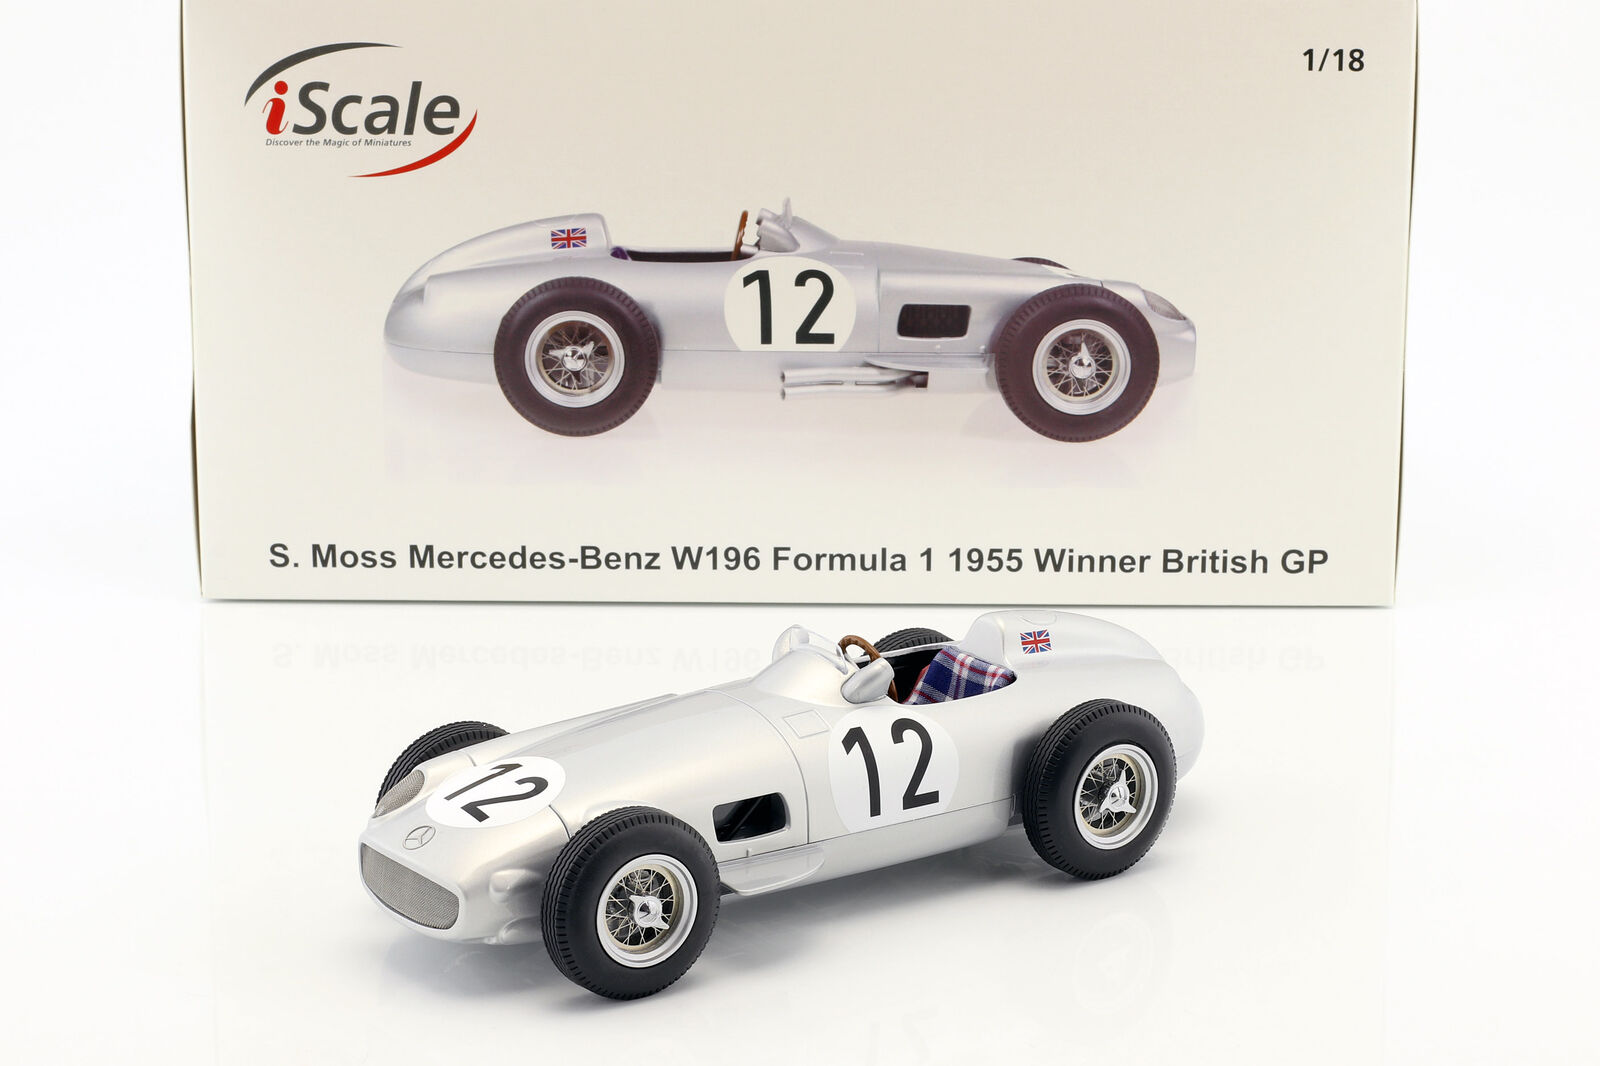 Stirling Moss Mercedes-Benz w196 Winner British GP Formula 1 1955 1 18 iScale